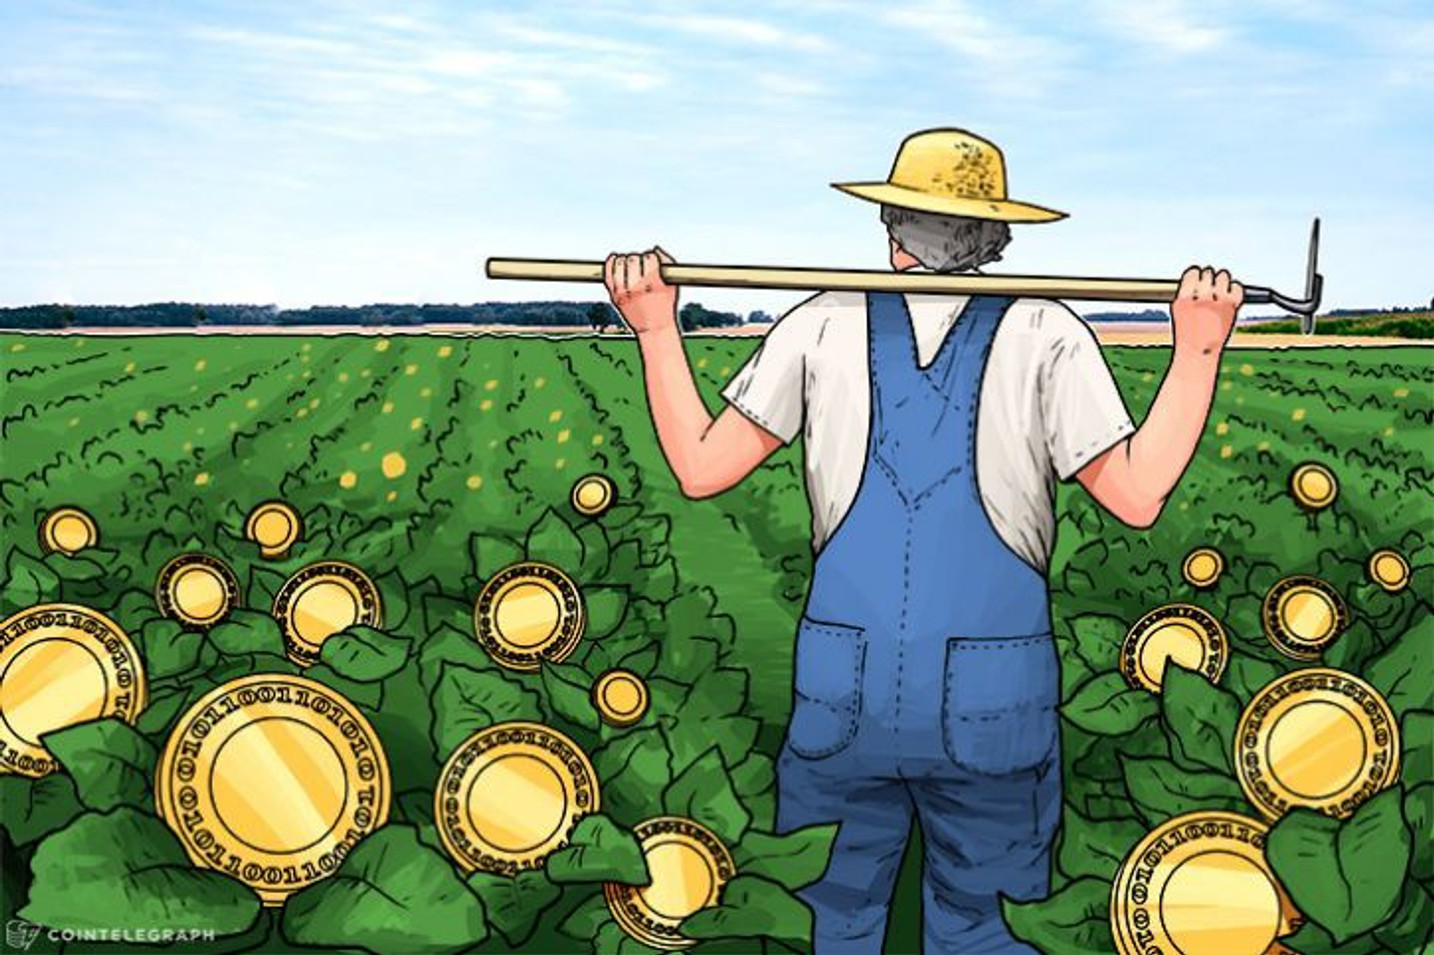 'Cryptomatoes' Grows 5 Acres Of Fruit From Bitcoin Mining Heat